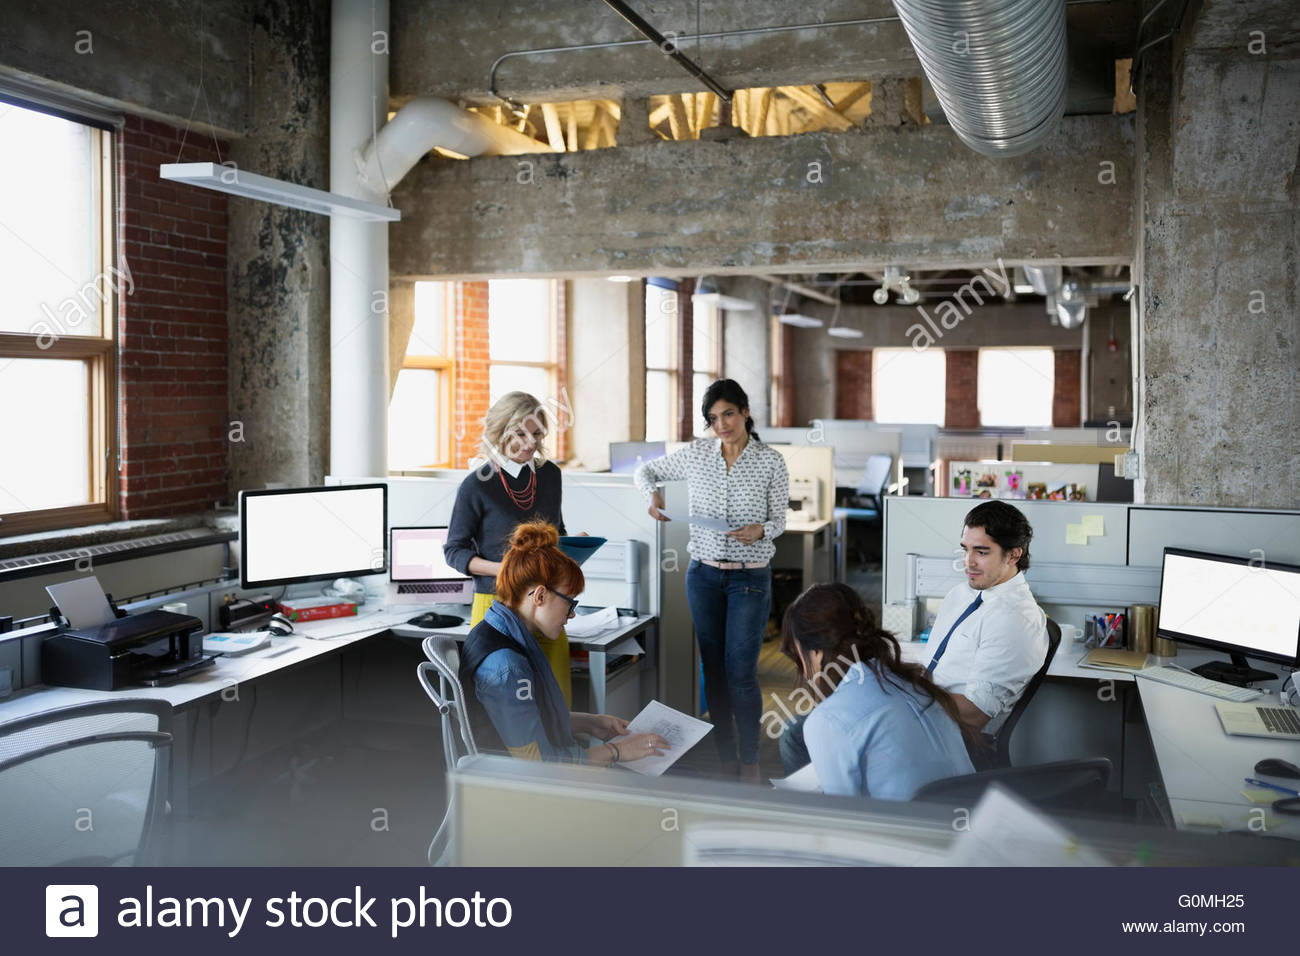 Business people meeting in open plan office - Stock Image